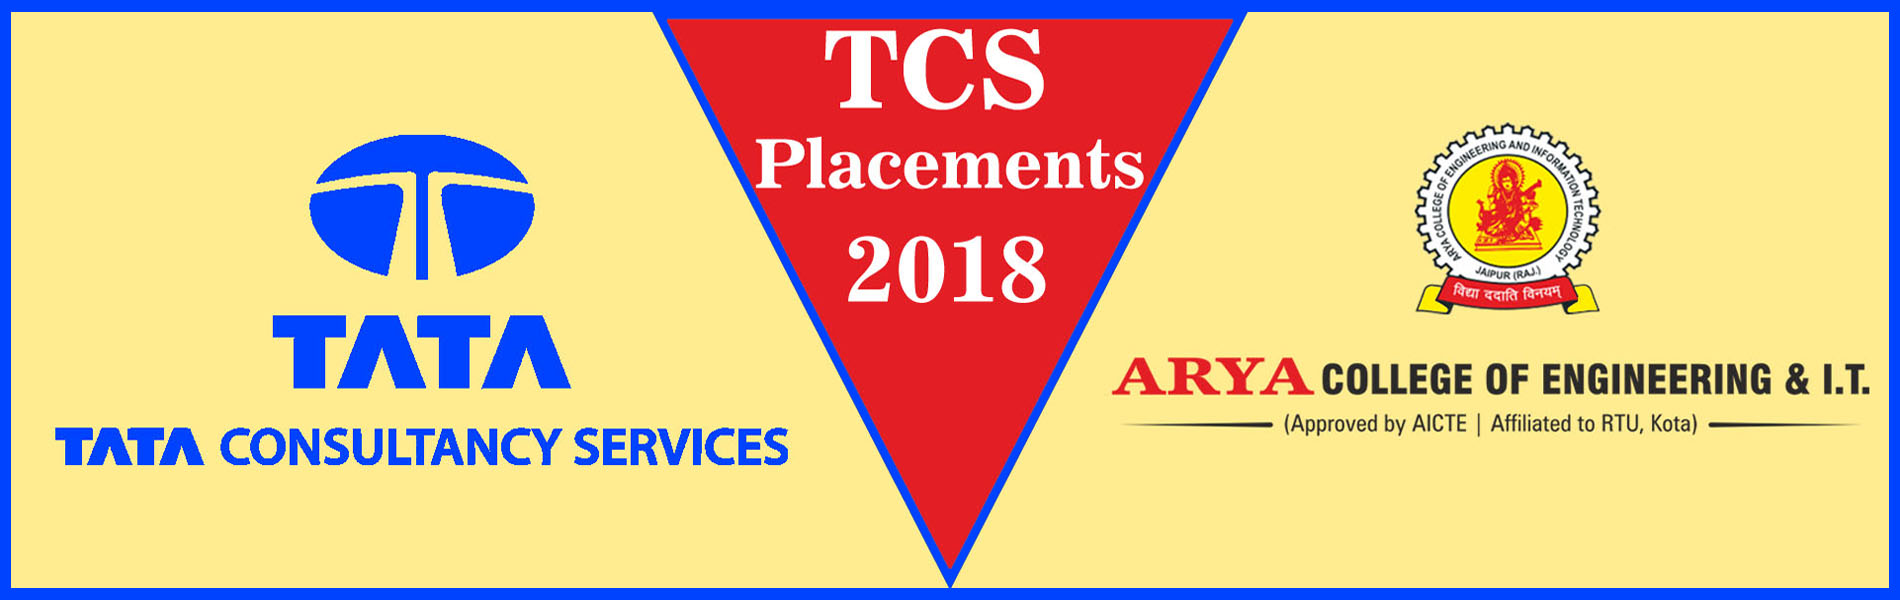 tcs-arya-college, Arya Logo, Arya College of Engineering and iT, Arya 1st Old Campus, Arya SP42, Arya College Jaipur, Arya College, ACEIT, Best Engineering College in Rajasthan, Arya Kukas, Arya Jaipur, Top 5 Engineering College in Rajasthan